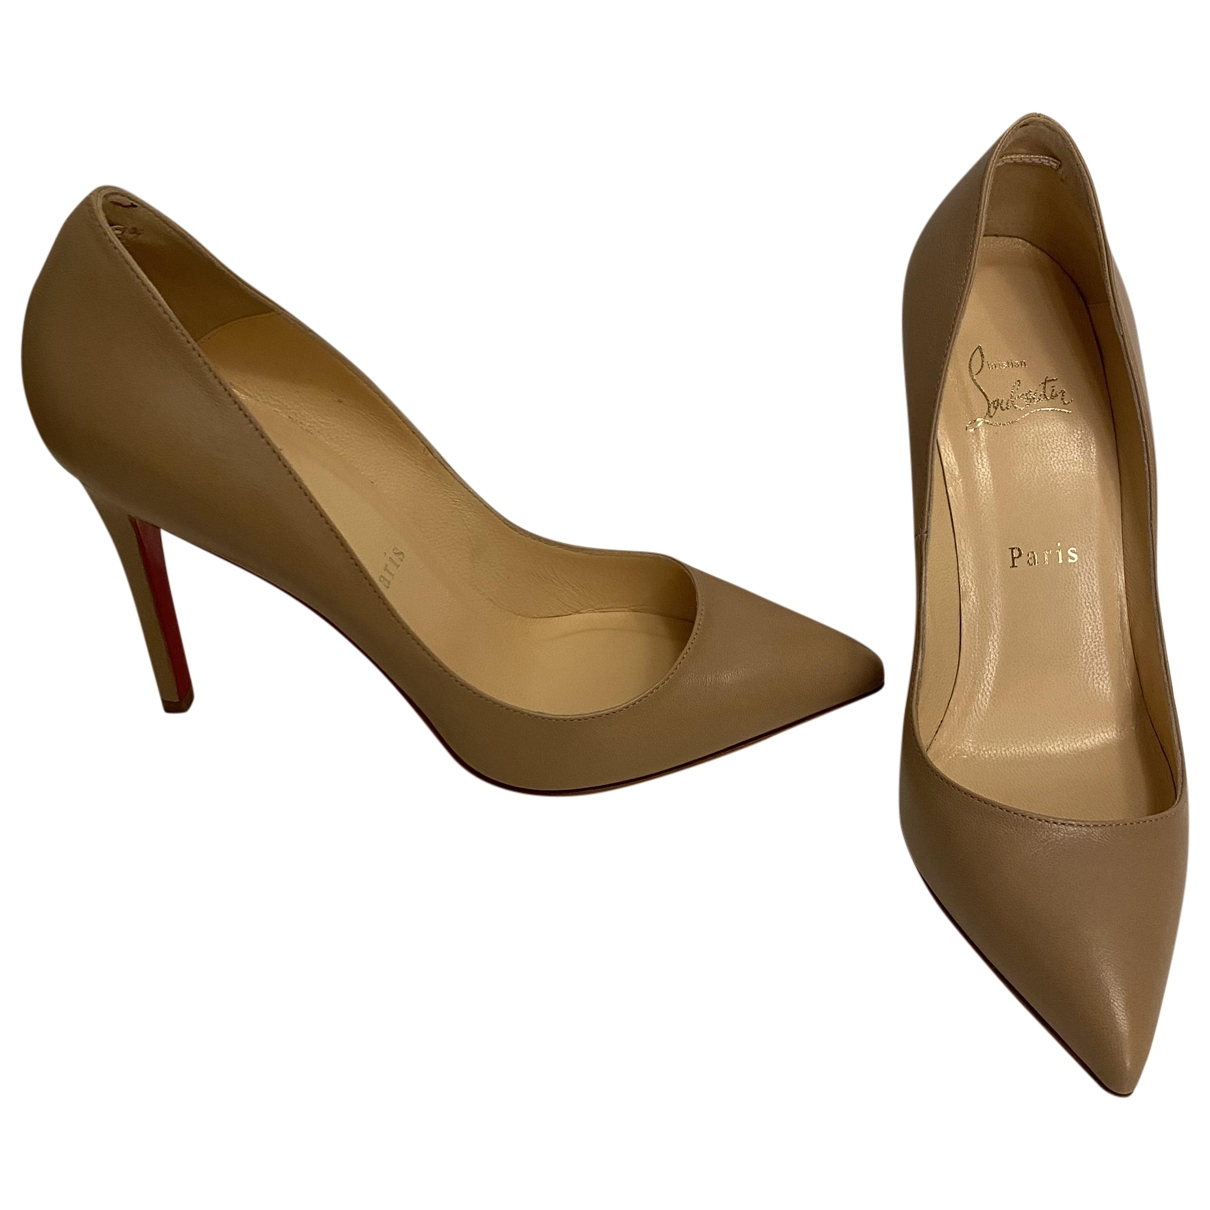 Christian Louboutin Pigalle Beige Leather Heels for Women 37 EU